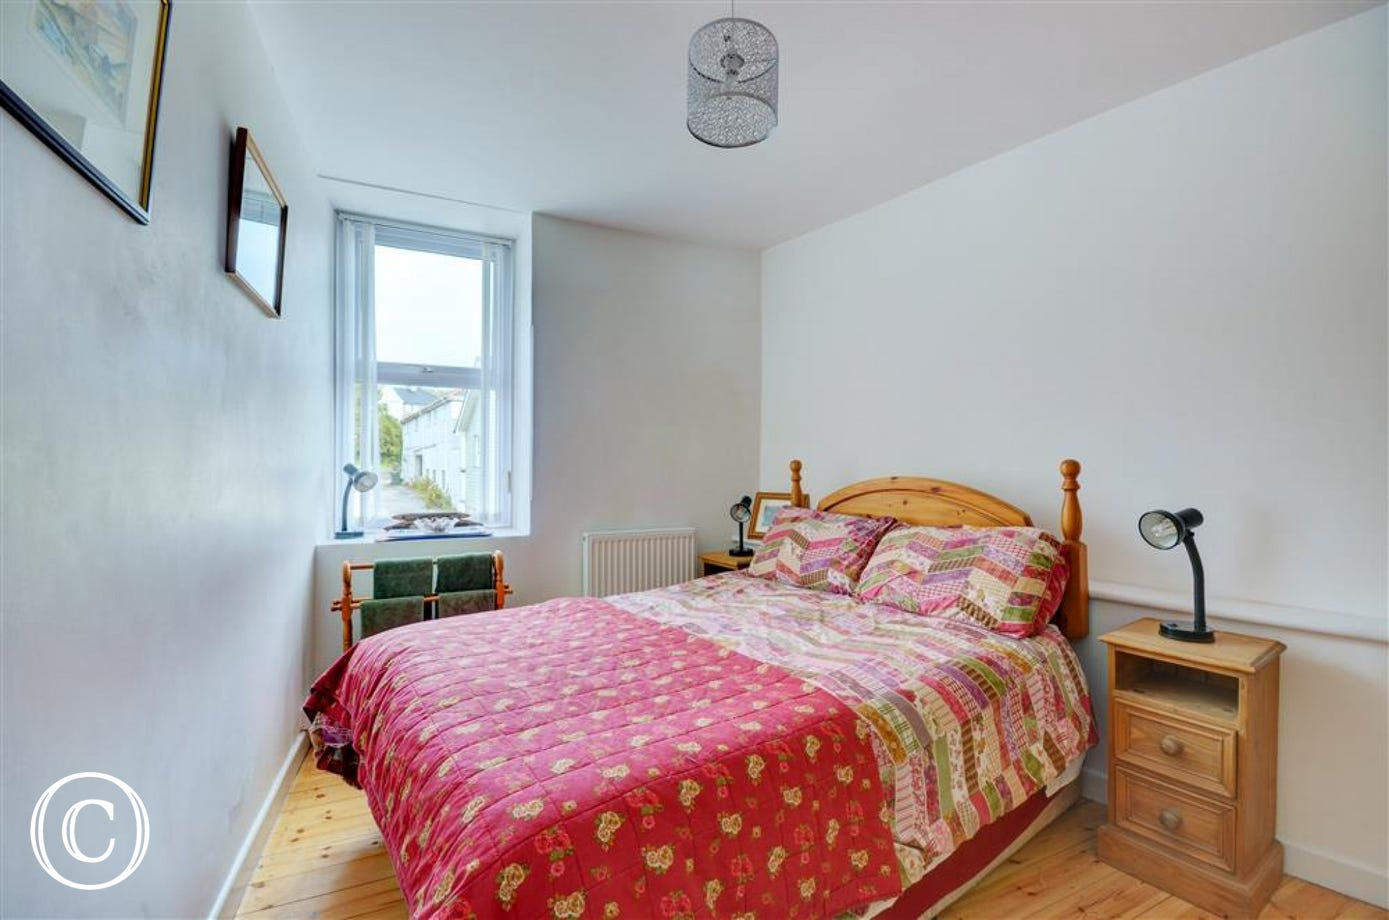 Double bedroom with bed linen provided